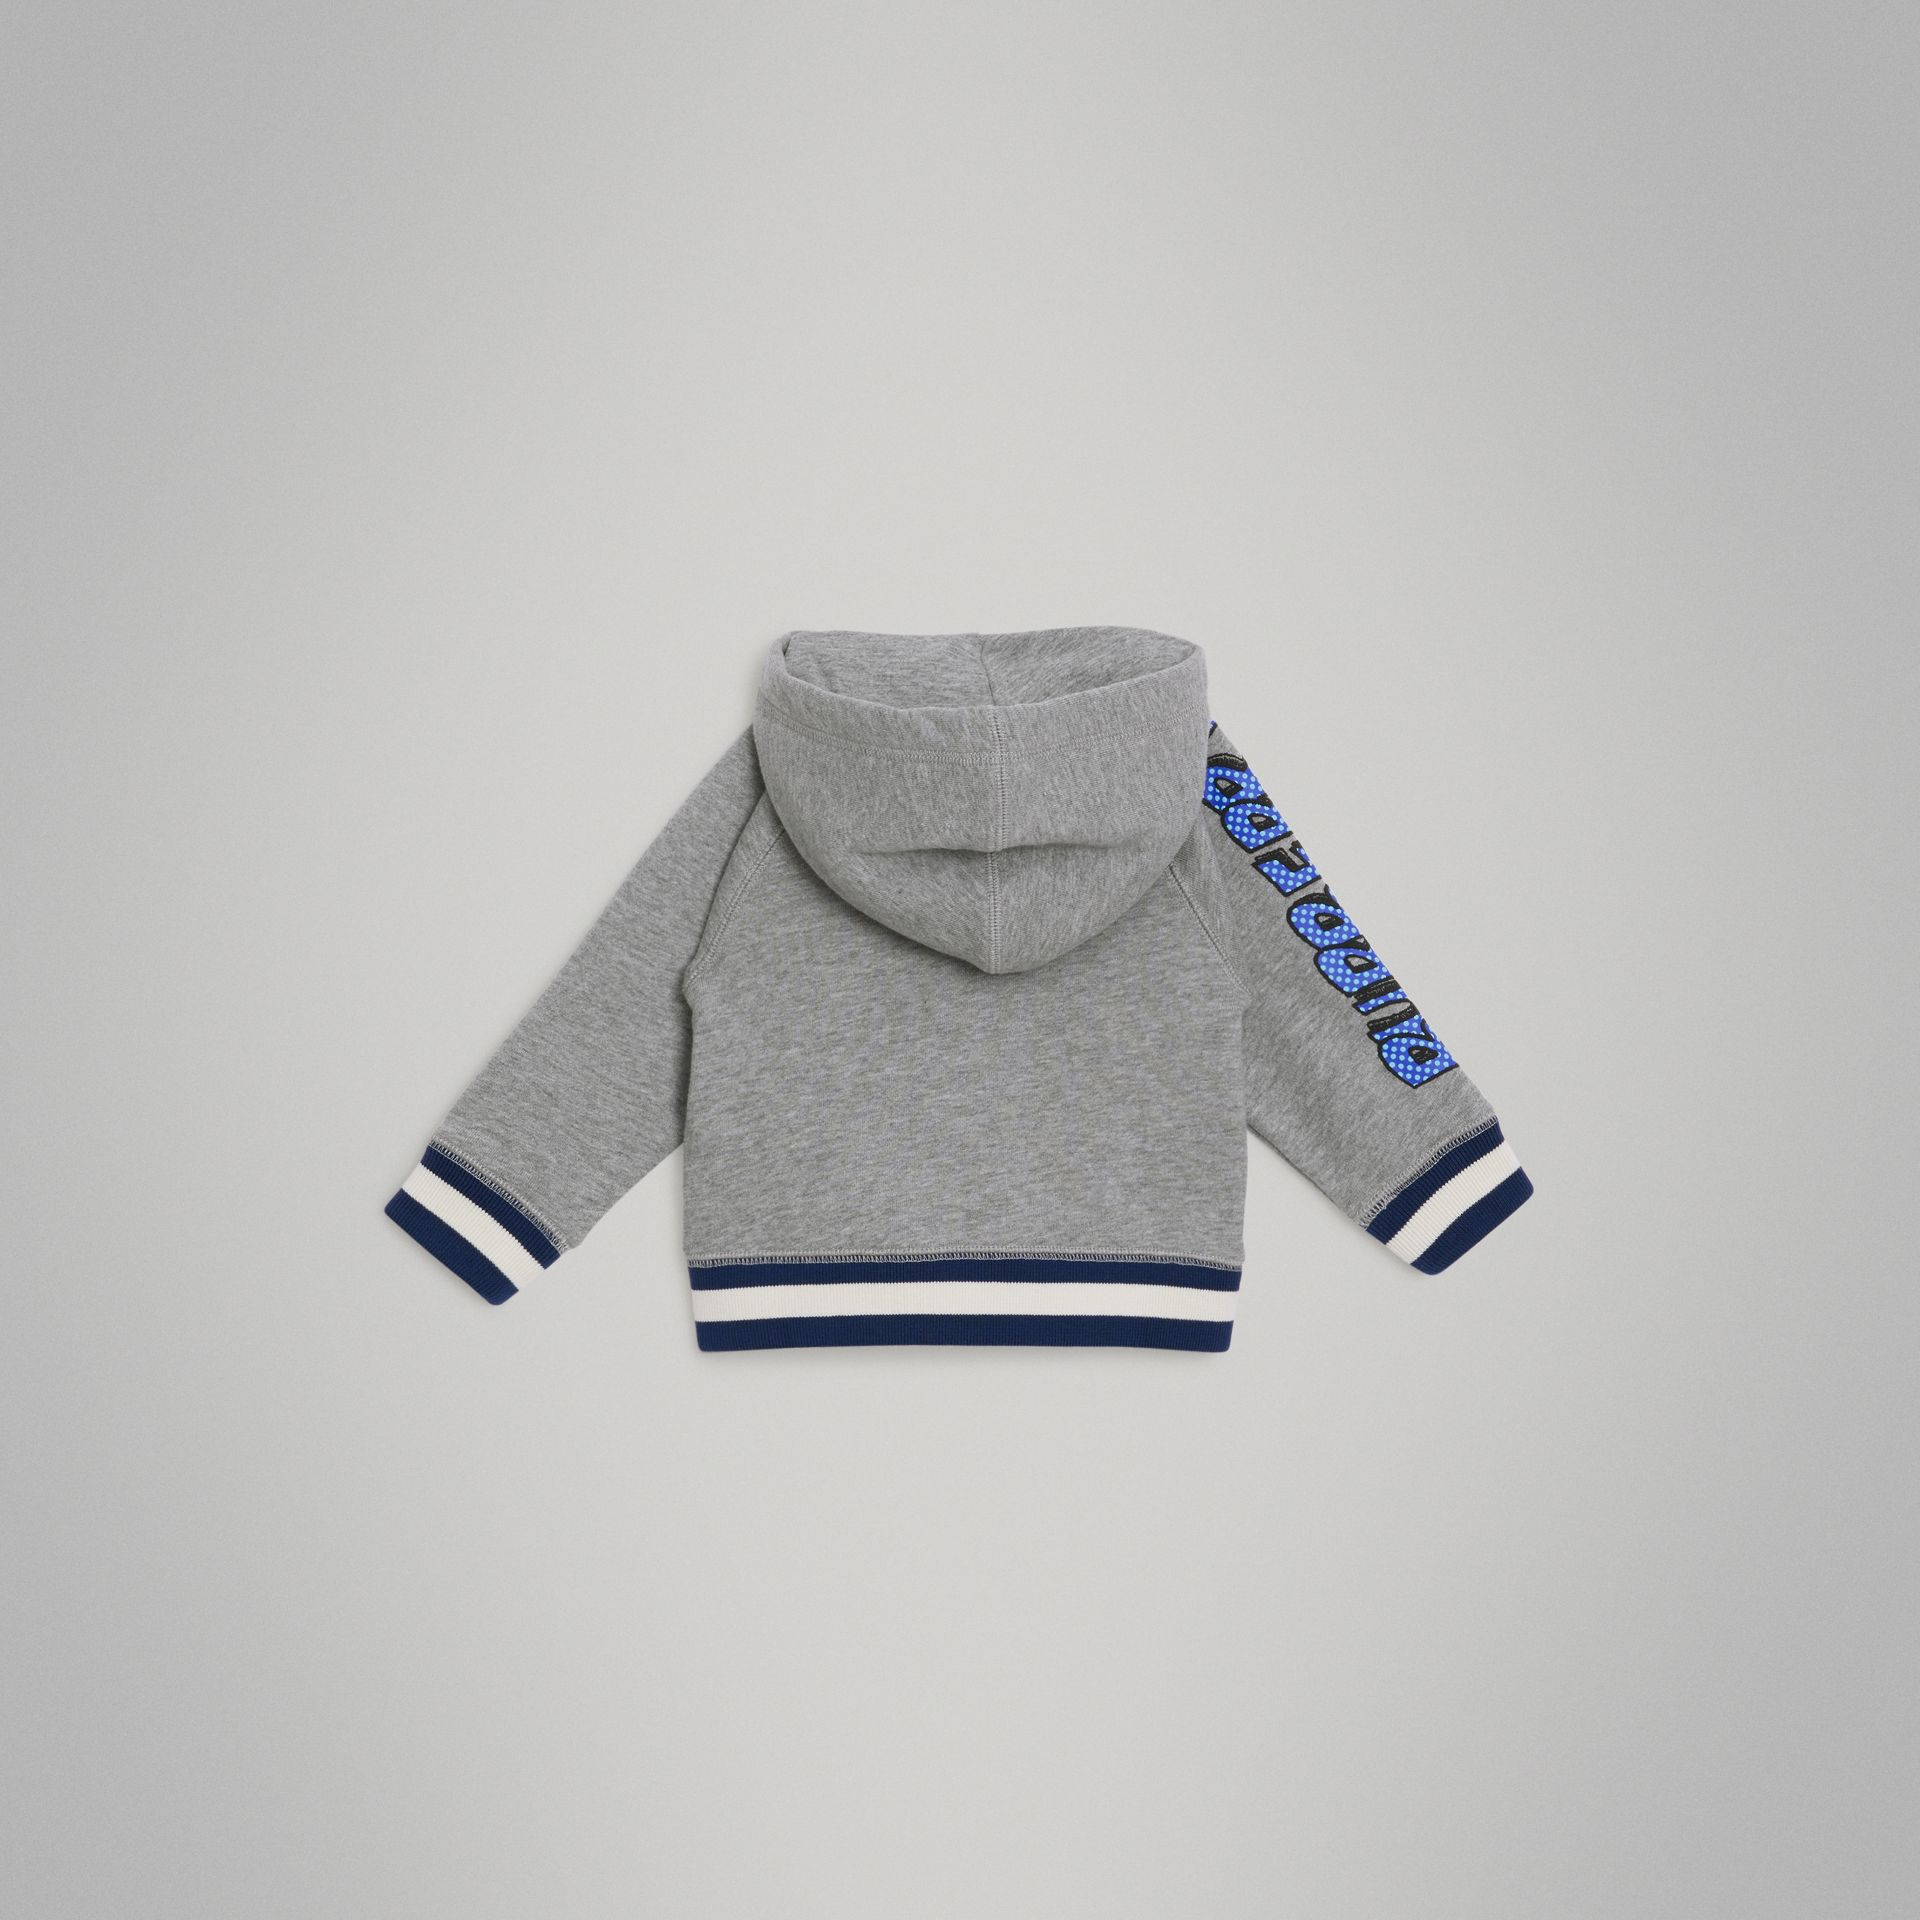 Patch Detail Cotton Hooded Top in Grey Melange - Children | Burberry United States - gallery image 3